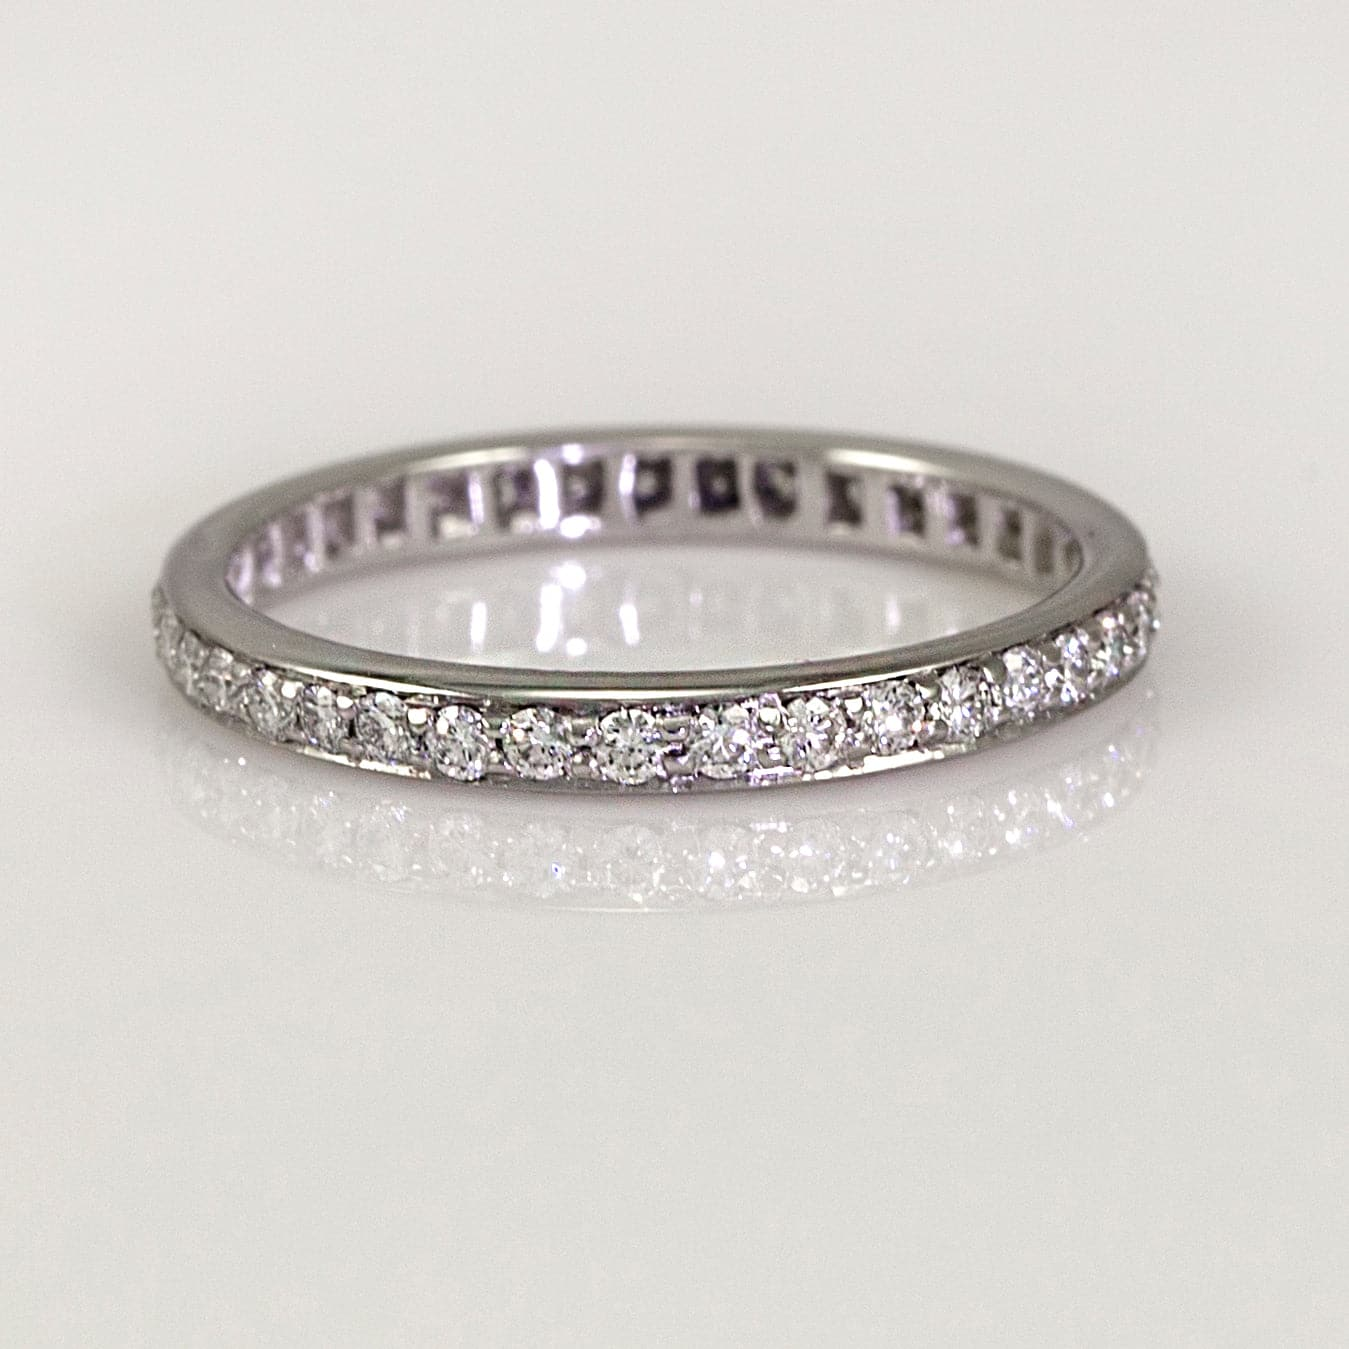 Mark Patterson Platinum Bead-Set Diamond Accent Eternity Band